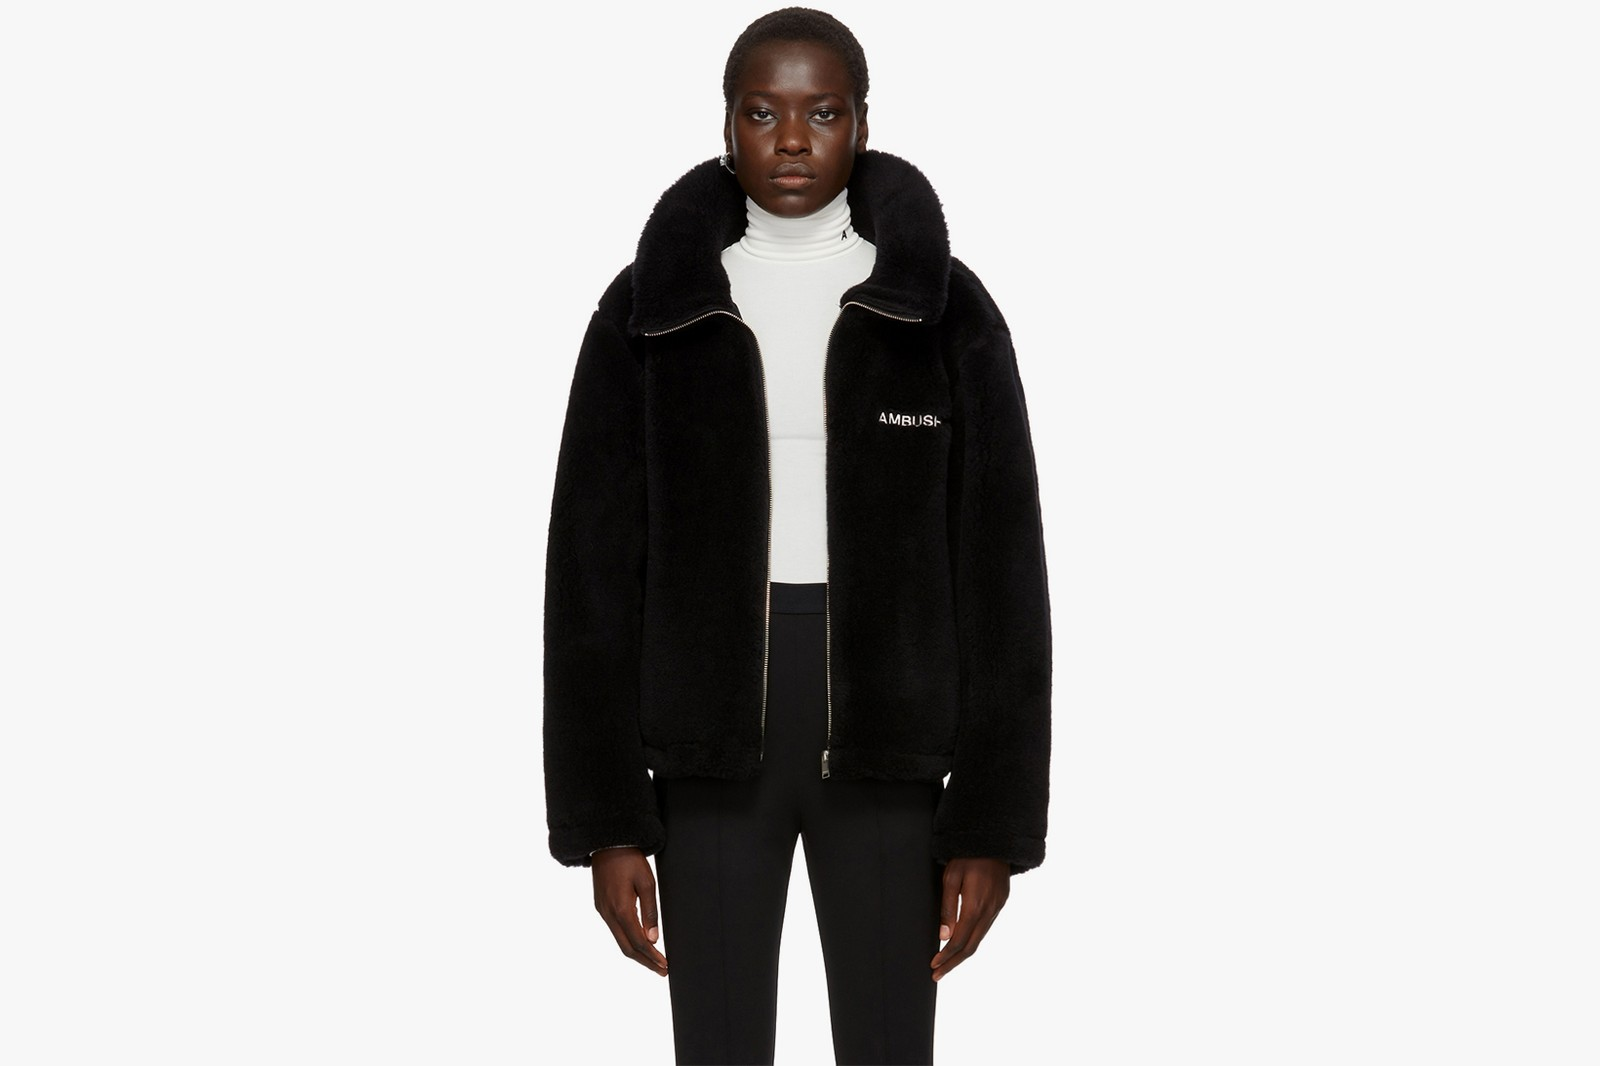 best fleece teddy shearling jackets fall winter ambush nike acne studios